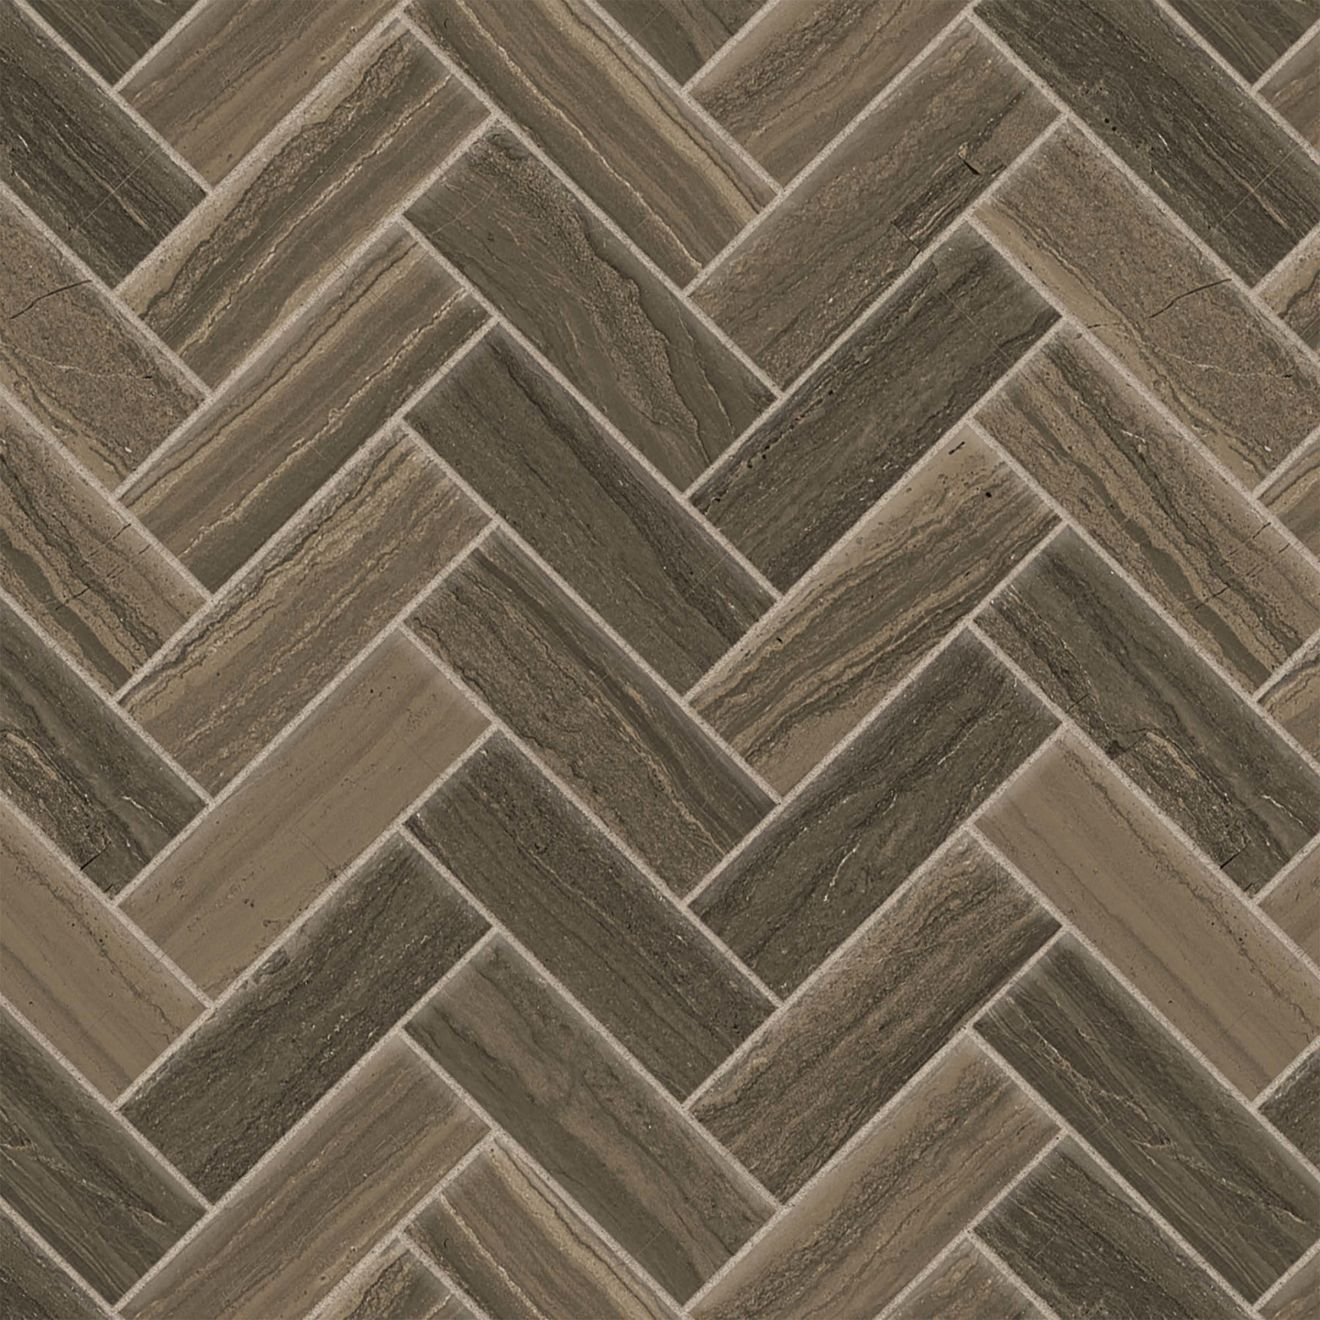 "Highland 1"" x 4"" Floor & Wall Mosaic in Cocoa"